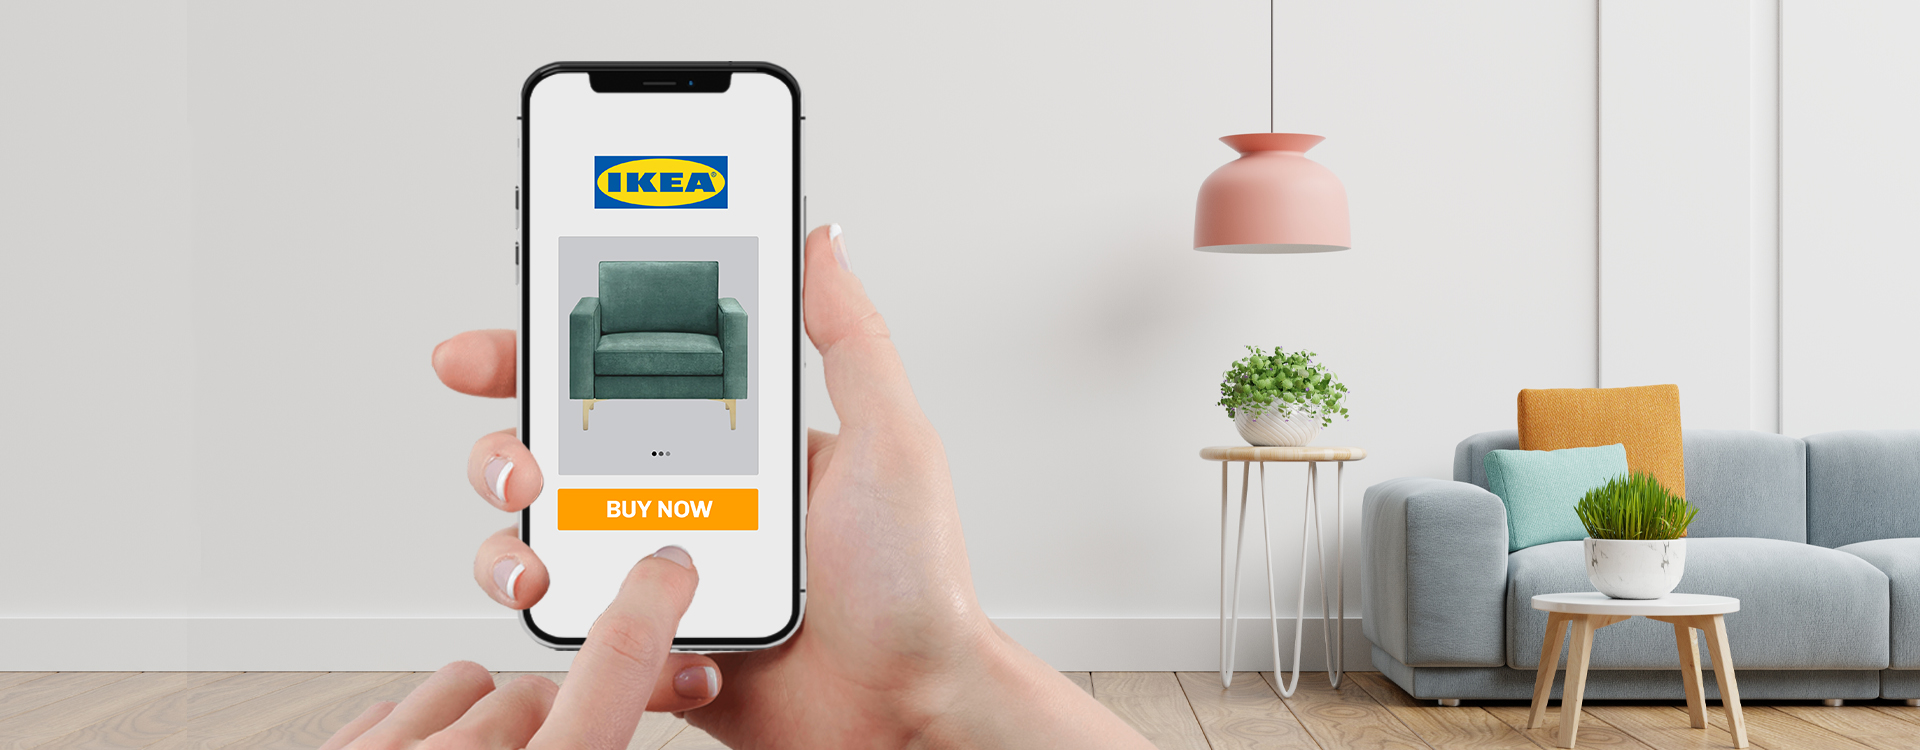 Ikea has launched its mobile app to allow customer purchase furniture online.